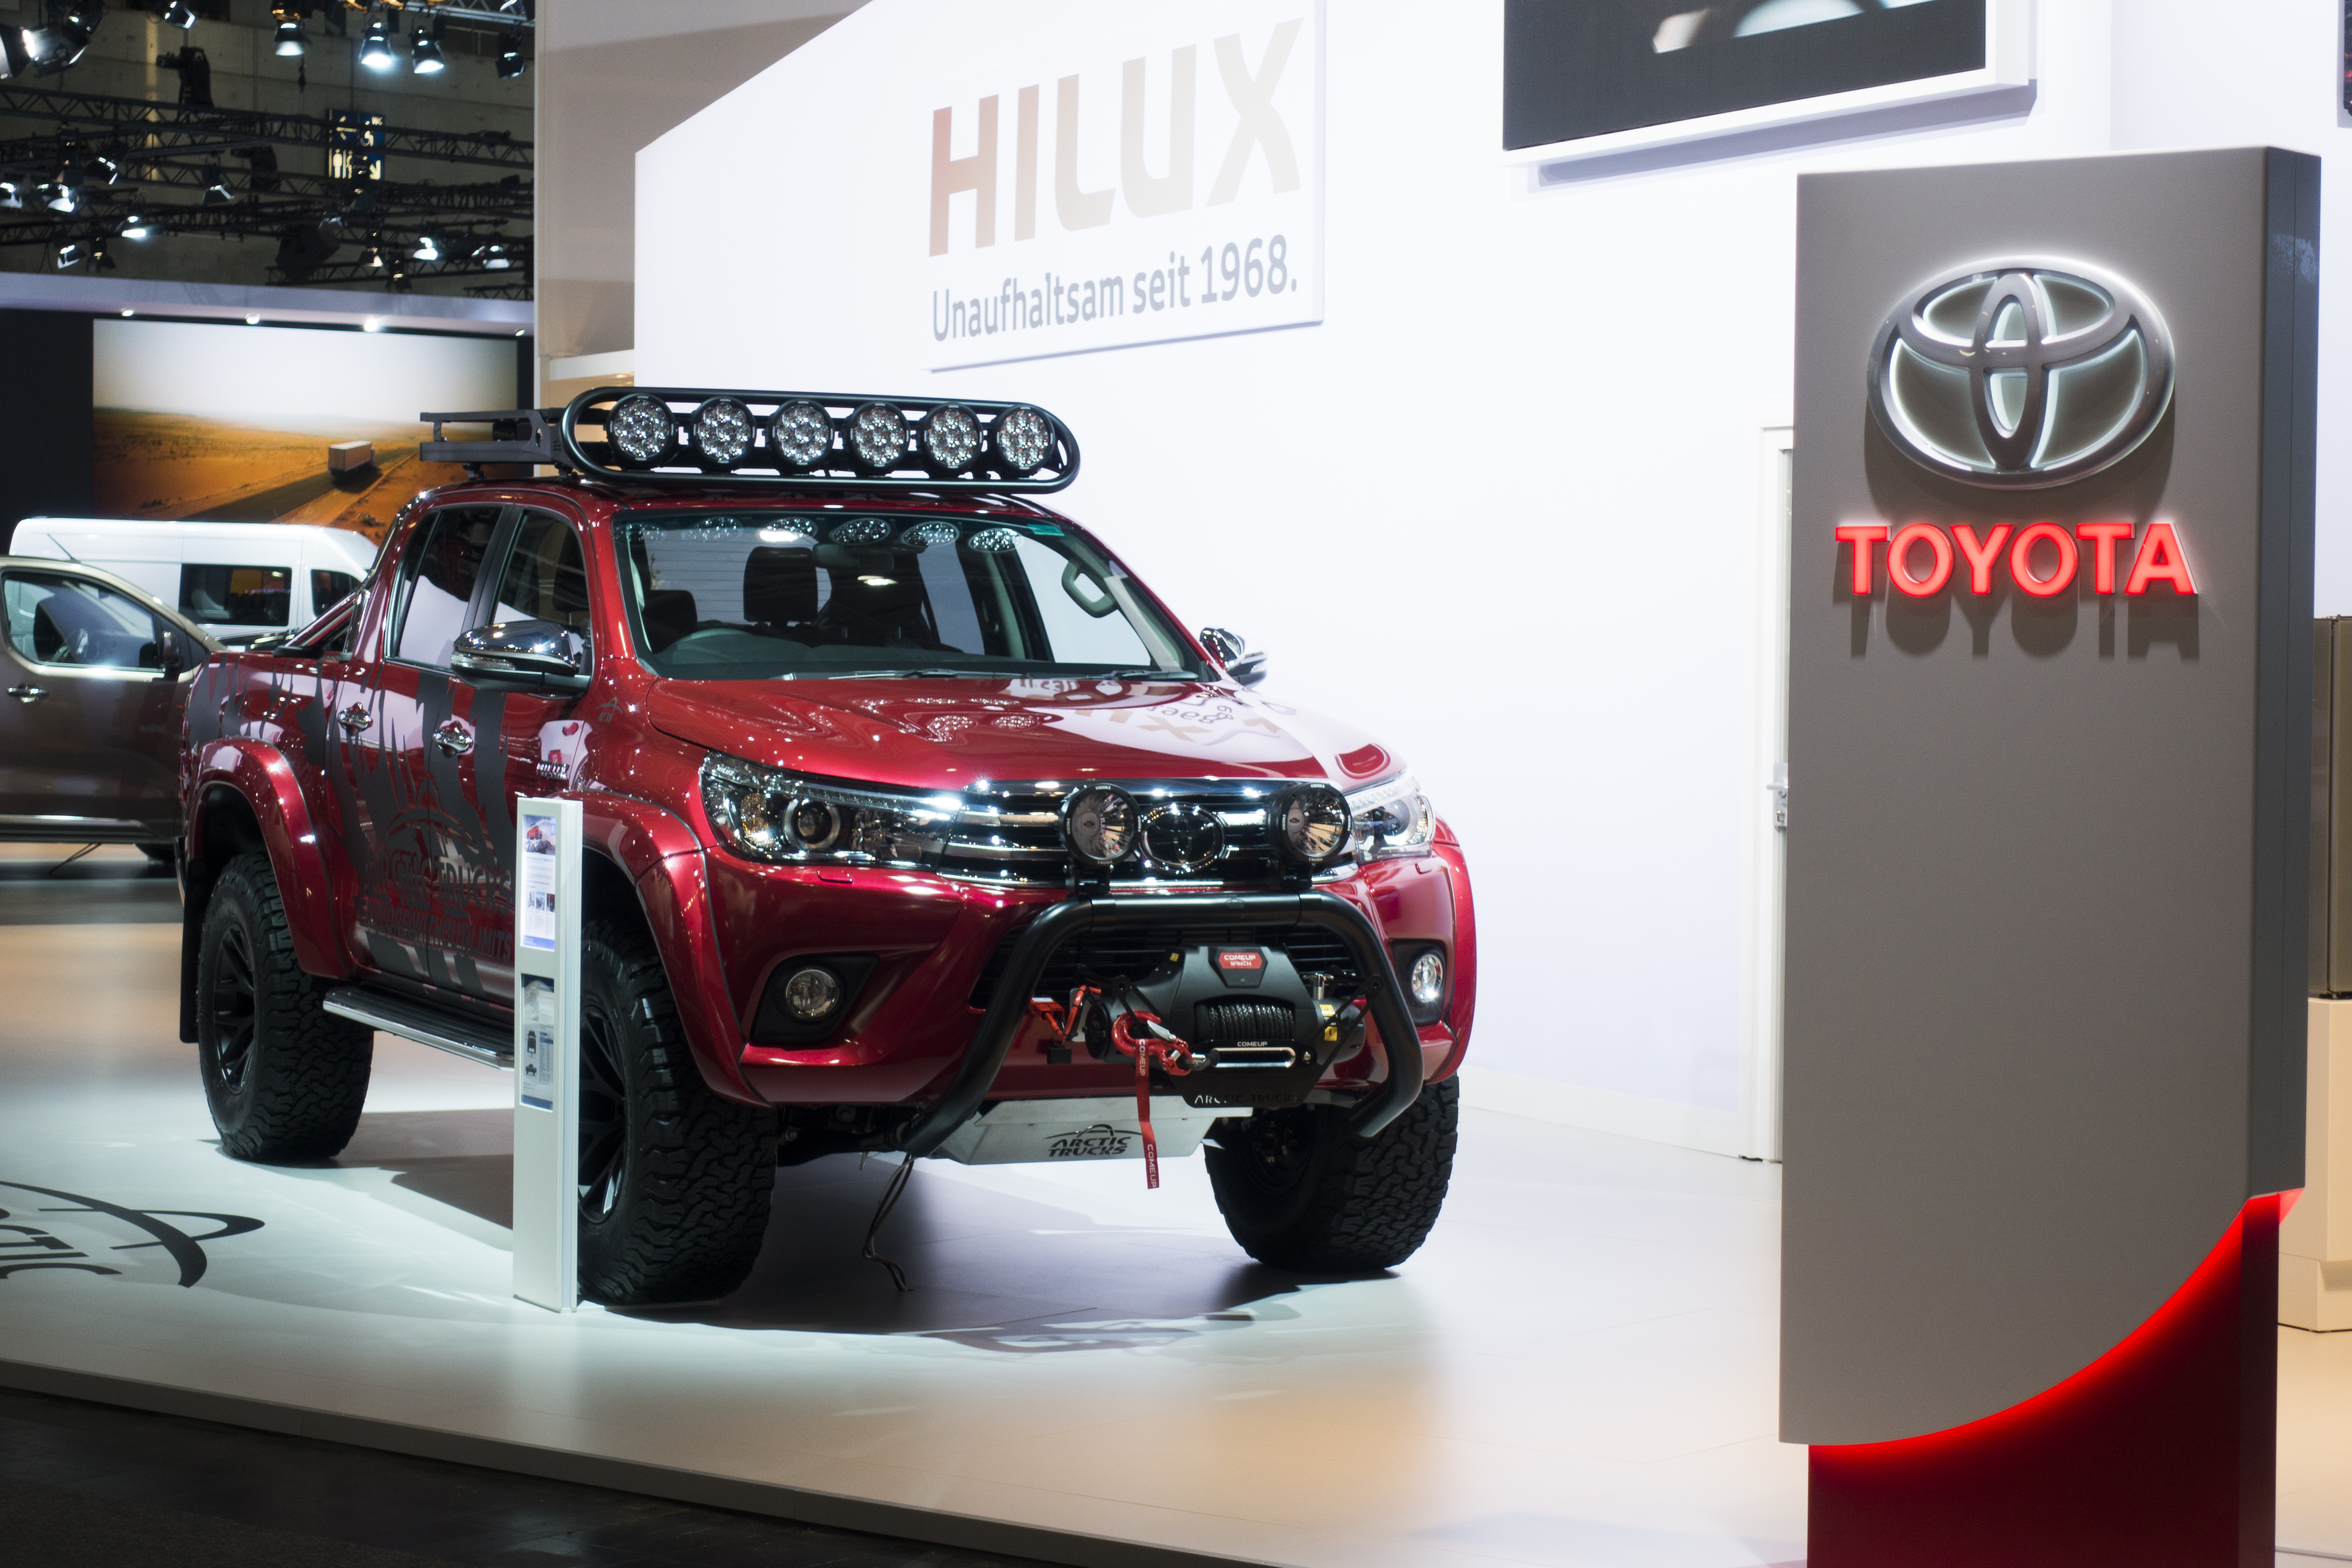 Toyota Hilux Arctic Trucks AT35 Hannover Show.jpg